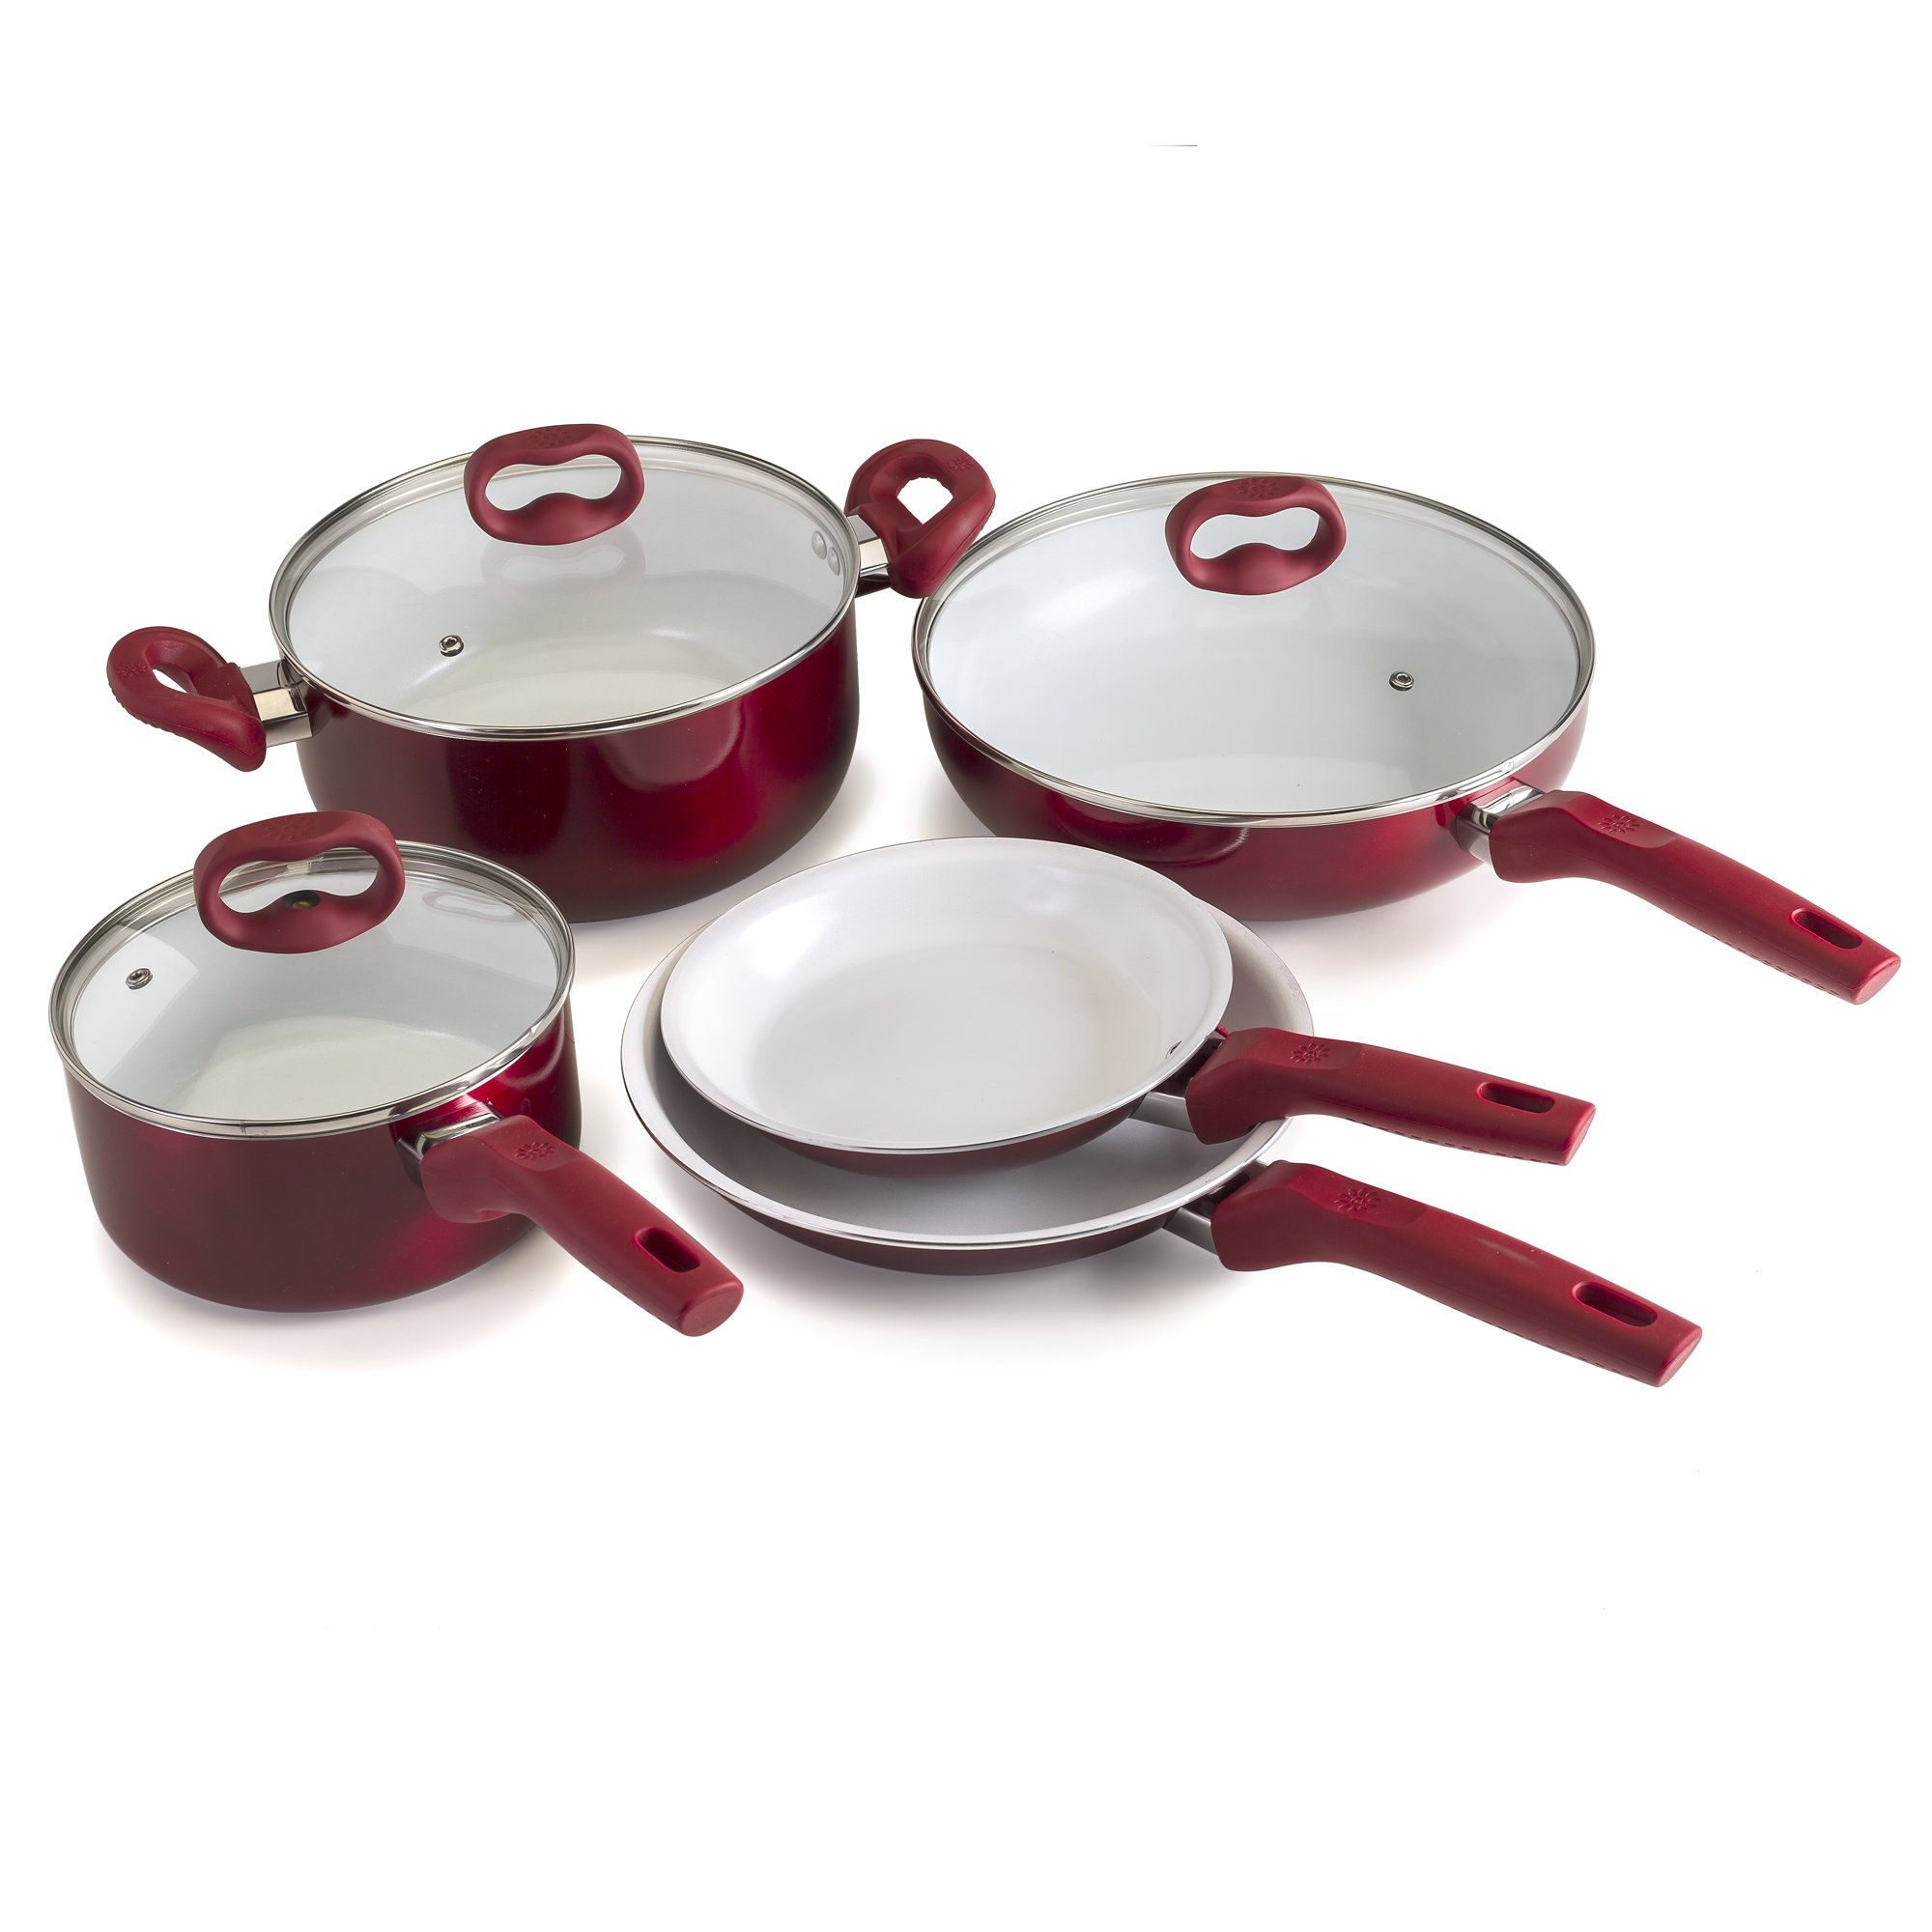 Ecolution Bliss 8Piece Non-Stick Cookware Set - PFOA, PTFE & Lead Free, , Candy Apple Exterior / White Interior